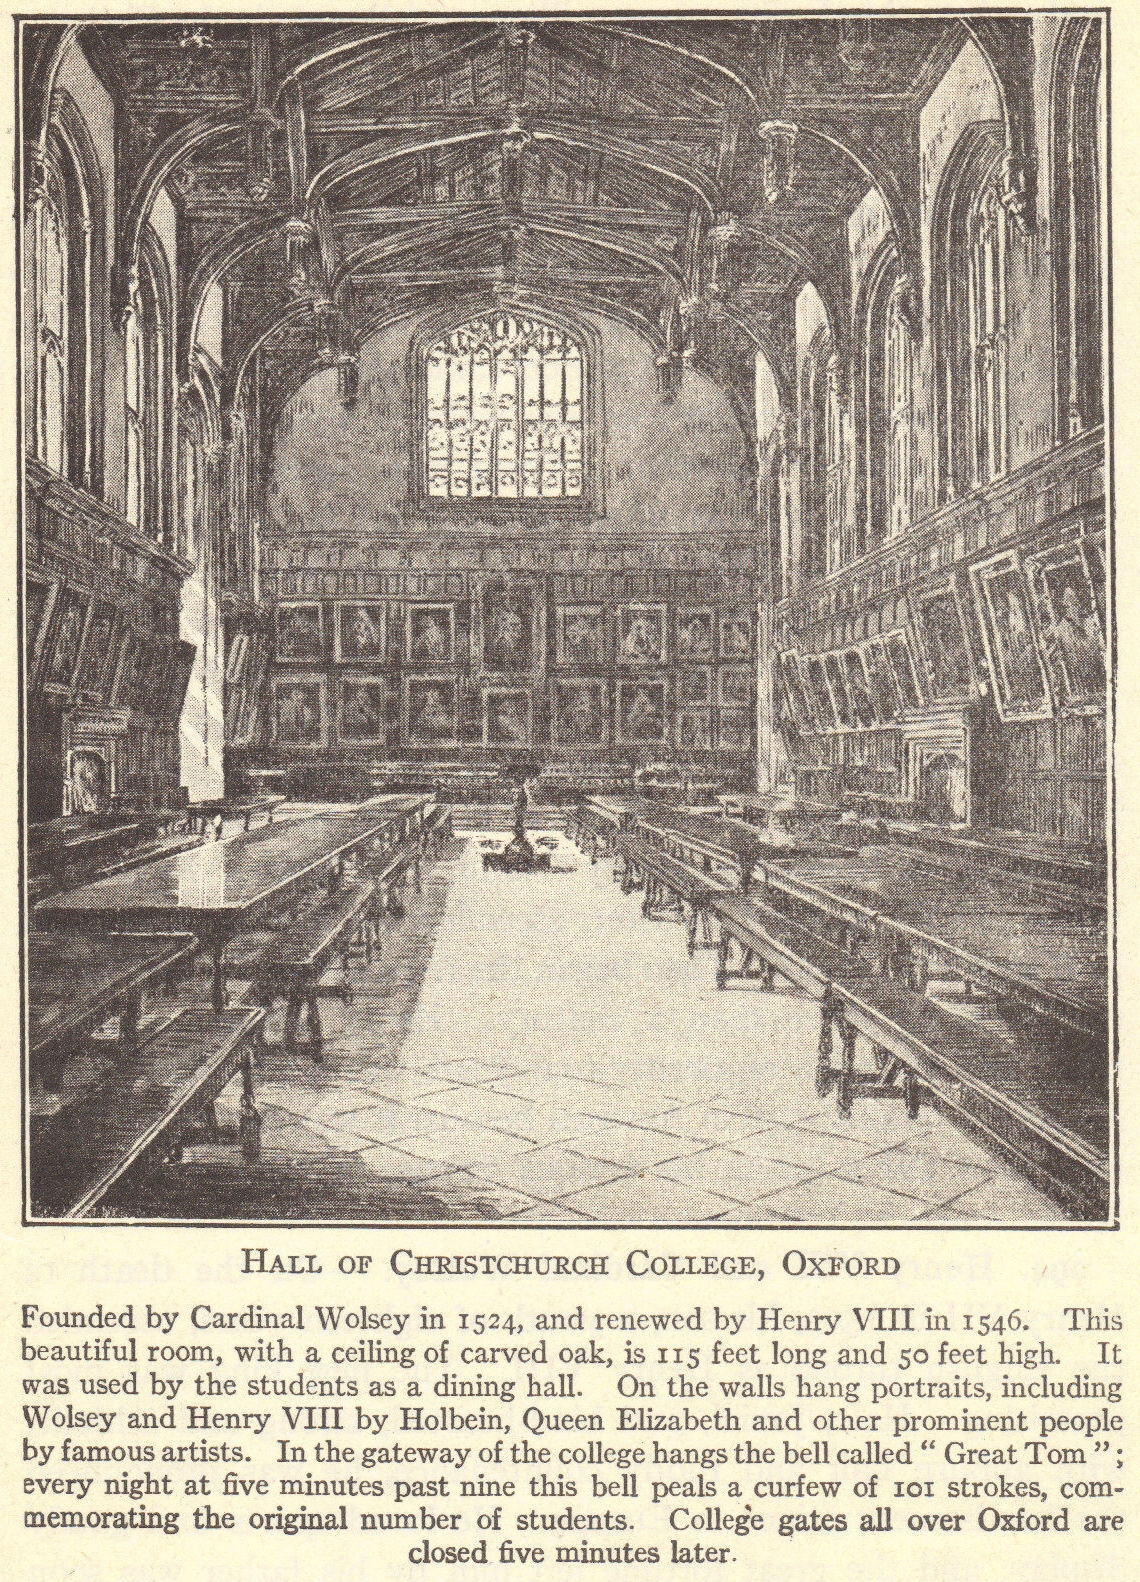 Hall of Christchurch College, Oxford